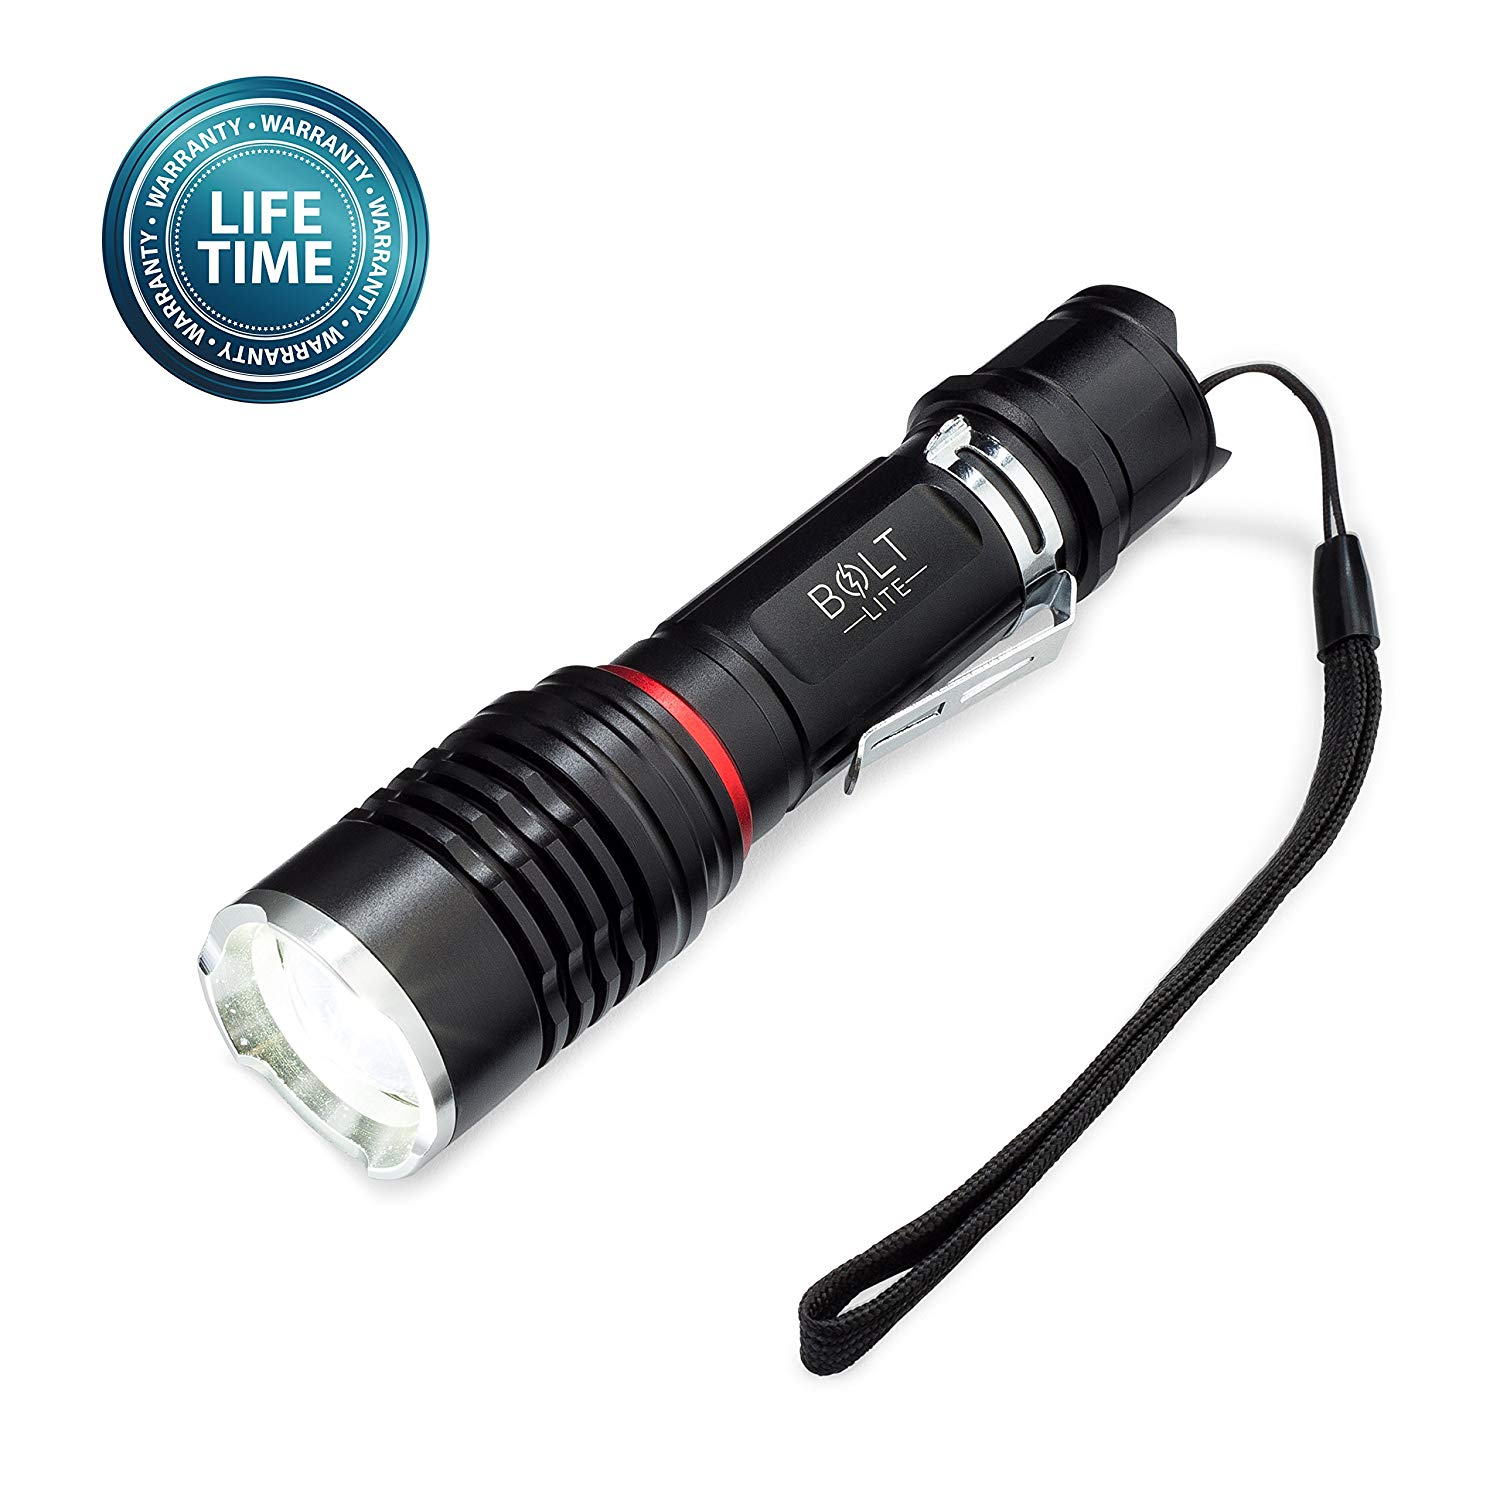 Tactical Flashlight- Rechargeable, Zoomable, Super Bright 1000 Lumens CREE LED- Includes Battery, Case, Charger